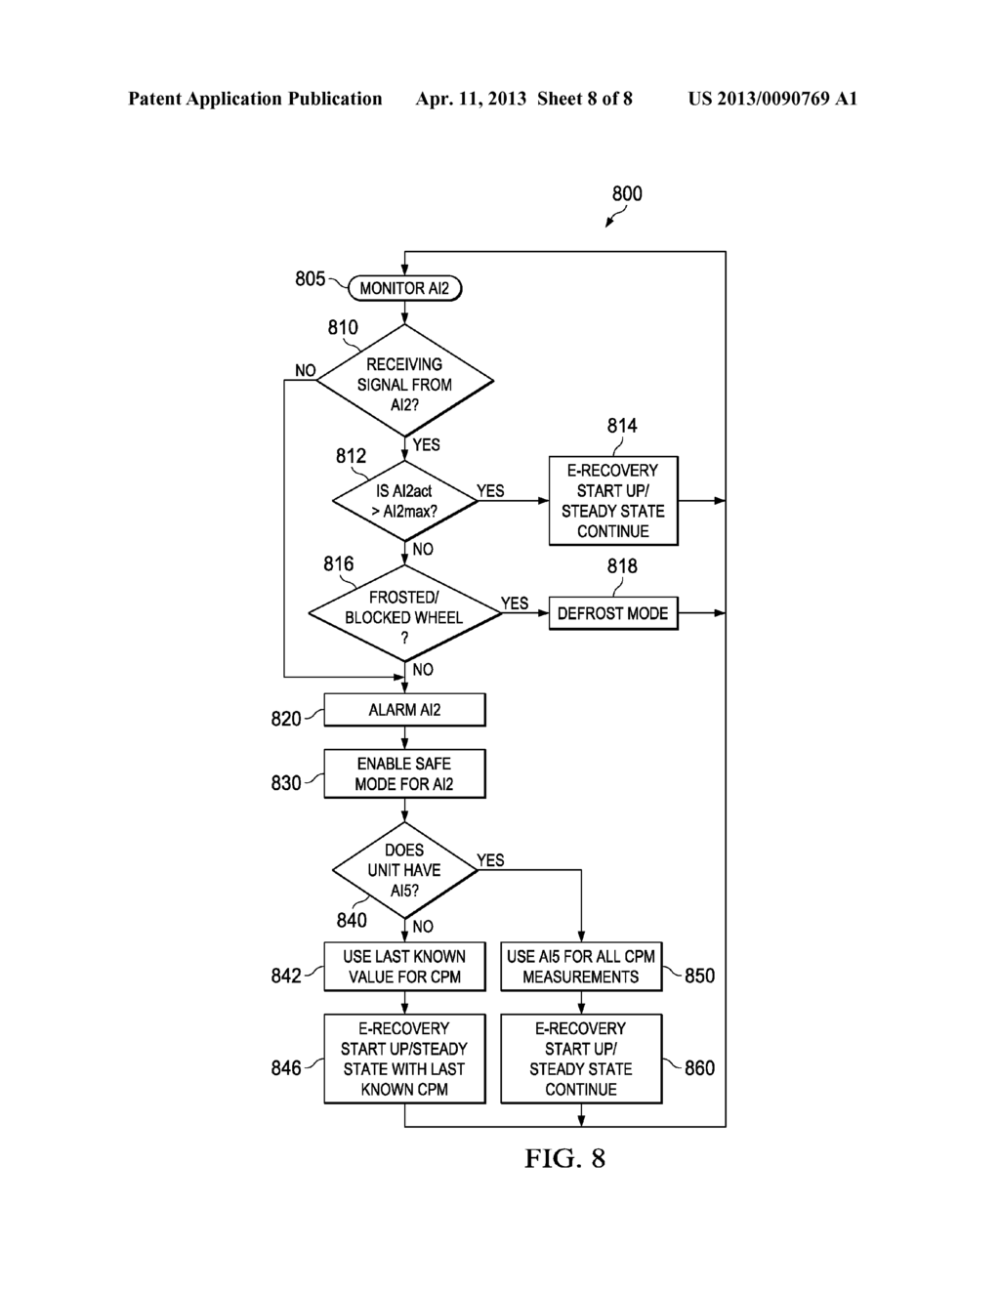 medium resolution of methods of operating an hvac system an hvac system and a controller therefor employing a self check scheme and predetermined operating procedures